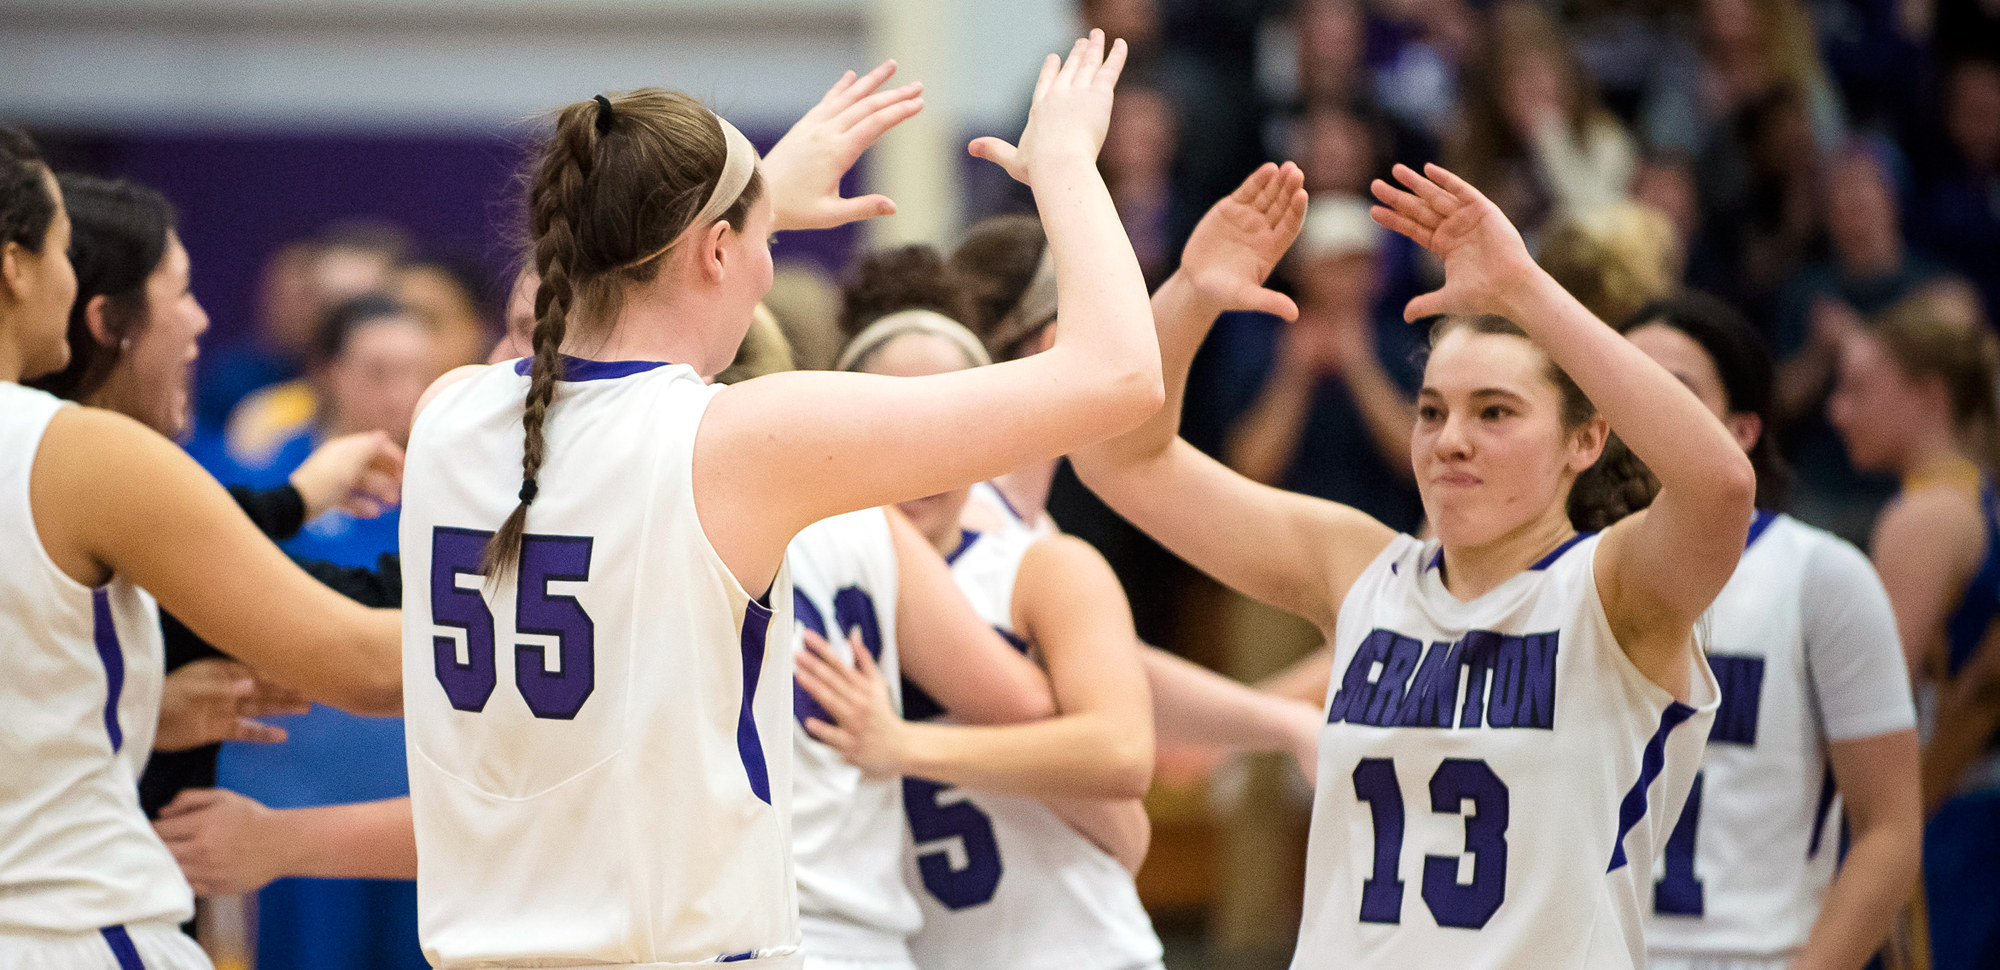 The University of Scranton women's basketball team has appeared 188 times in the D3Hoops.com Top 25 poll since its first release during the 1999-2000 season.